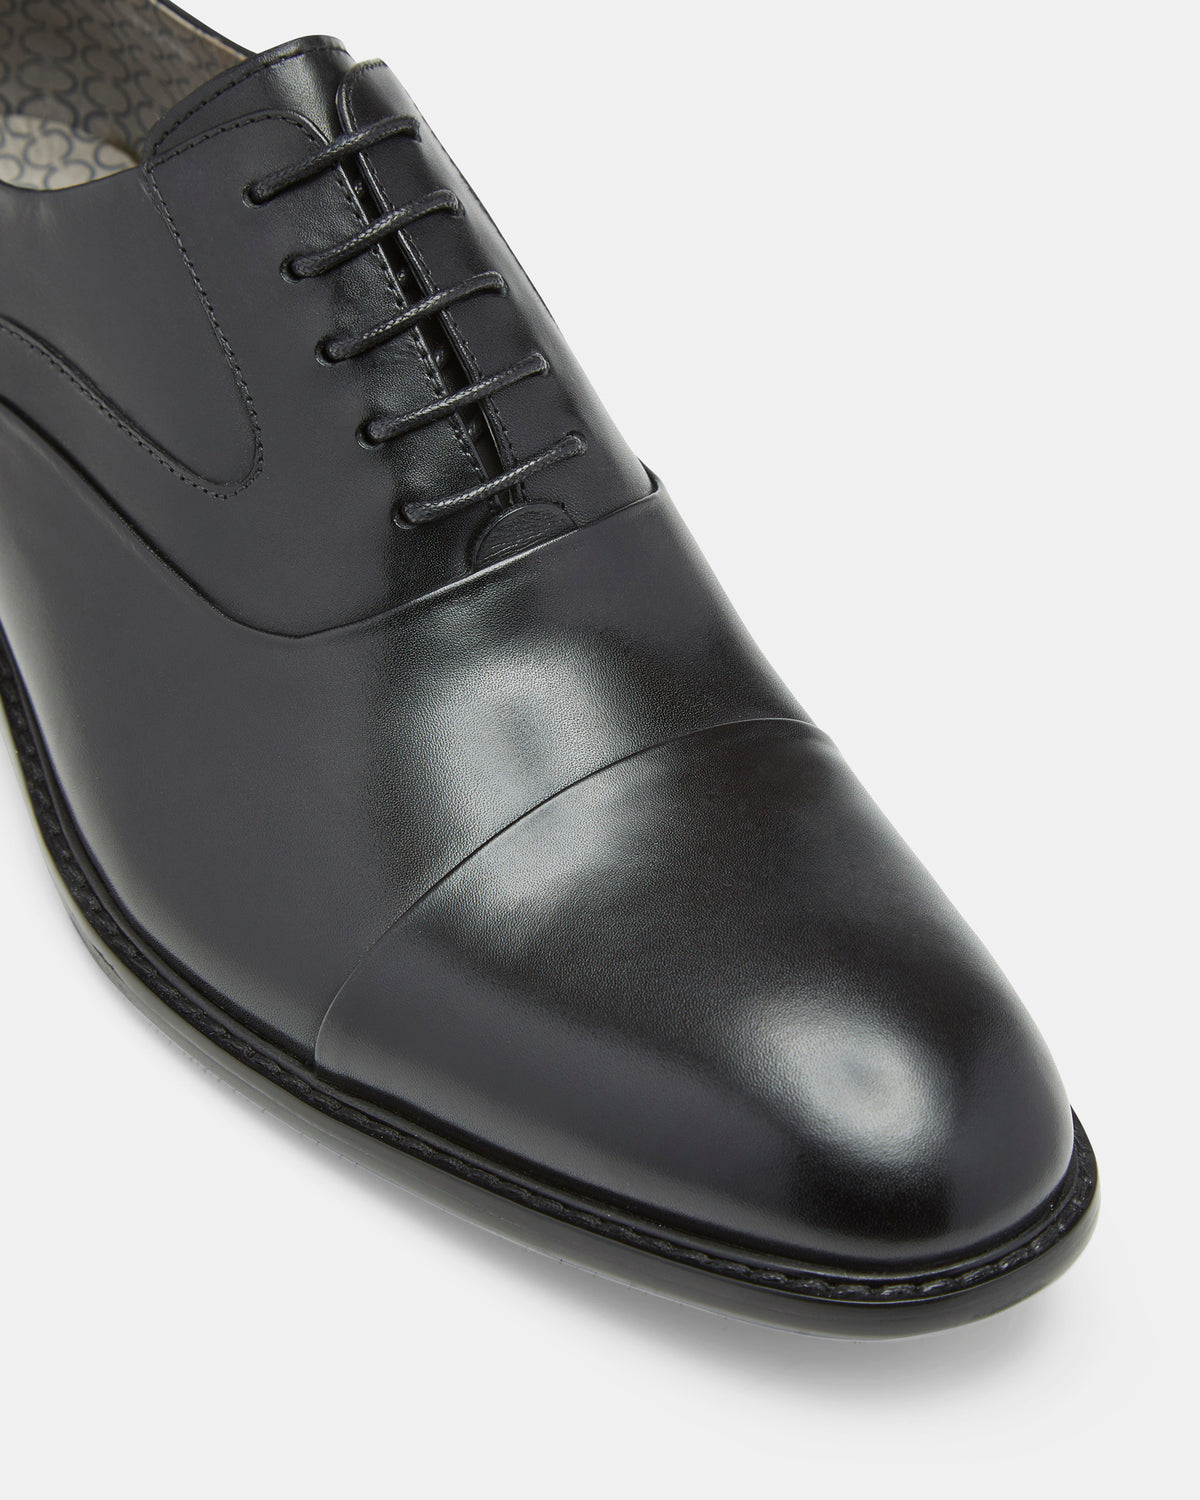 FRANK LEATHER OXFORD SHOES BLACK